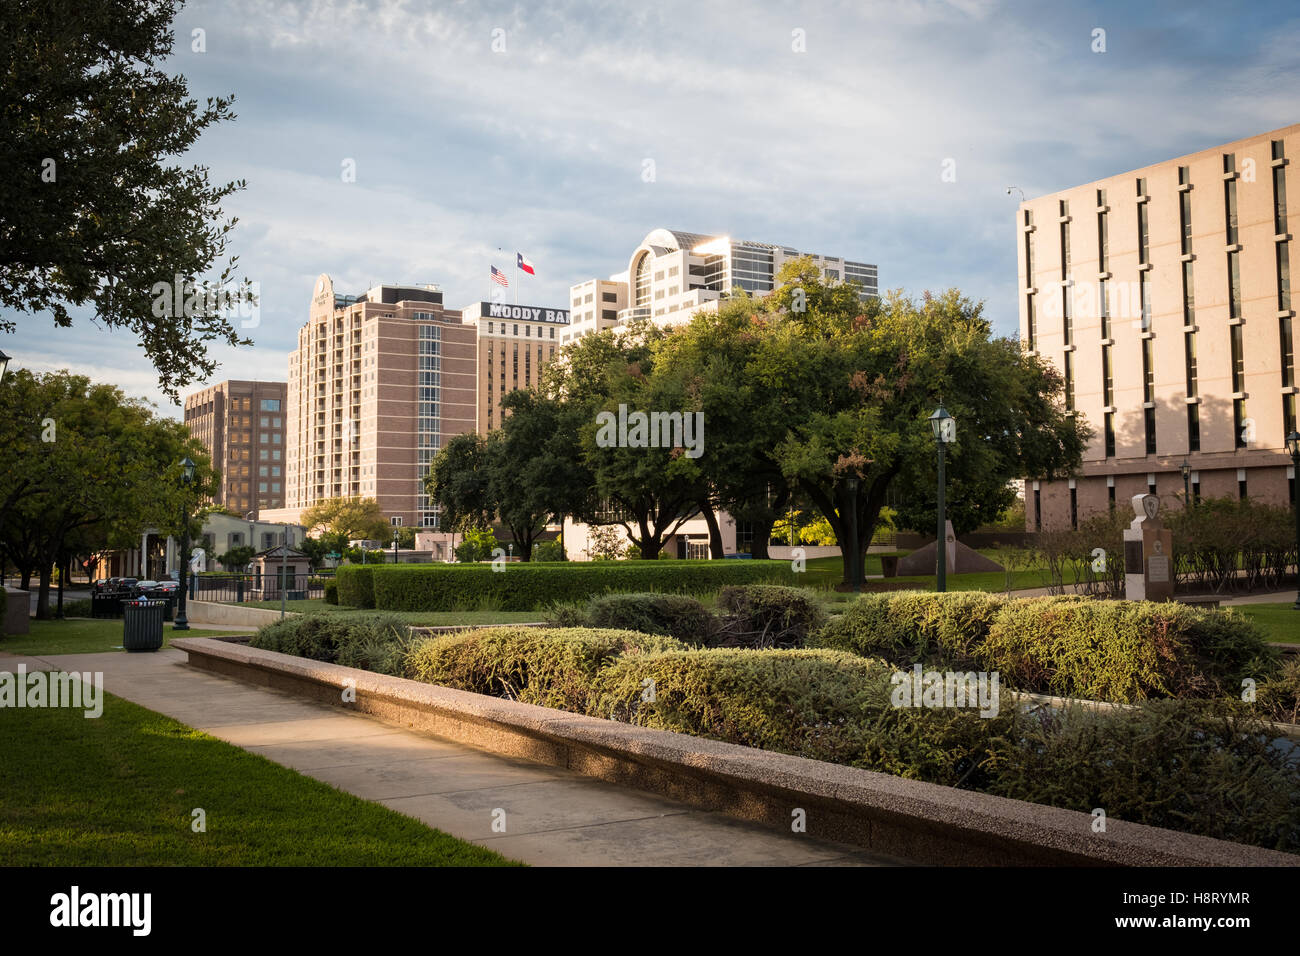 Moody Bank Buiding Austin, Texas, United States - Stock Image